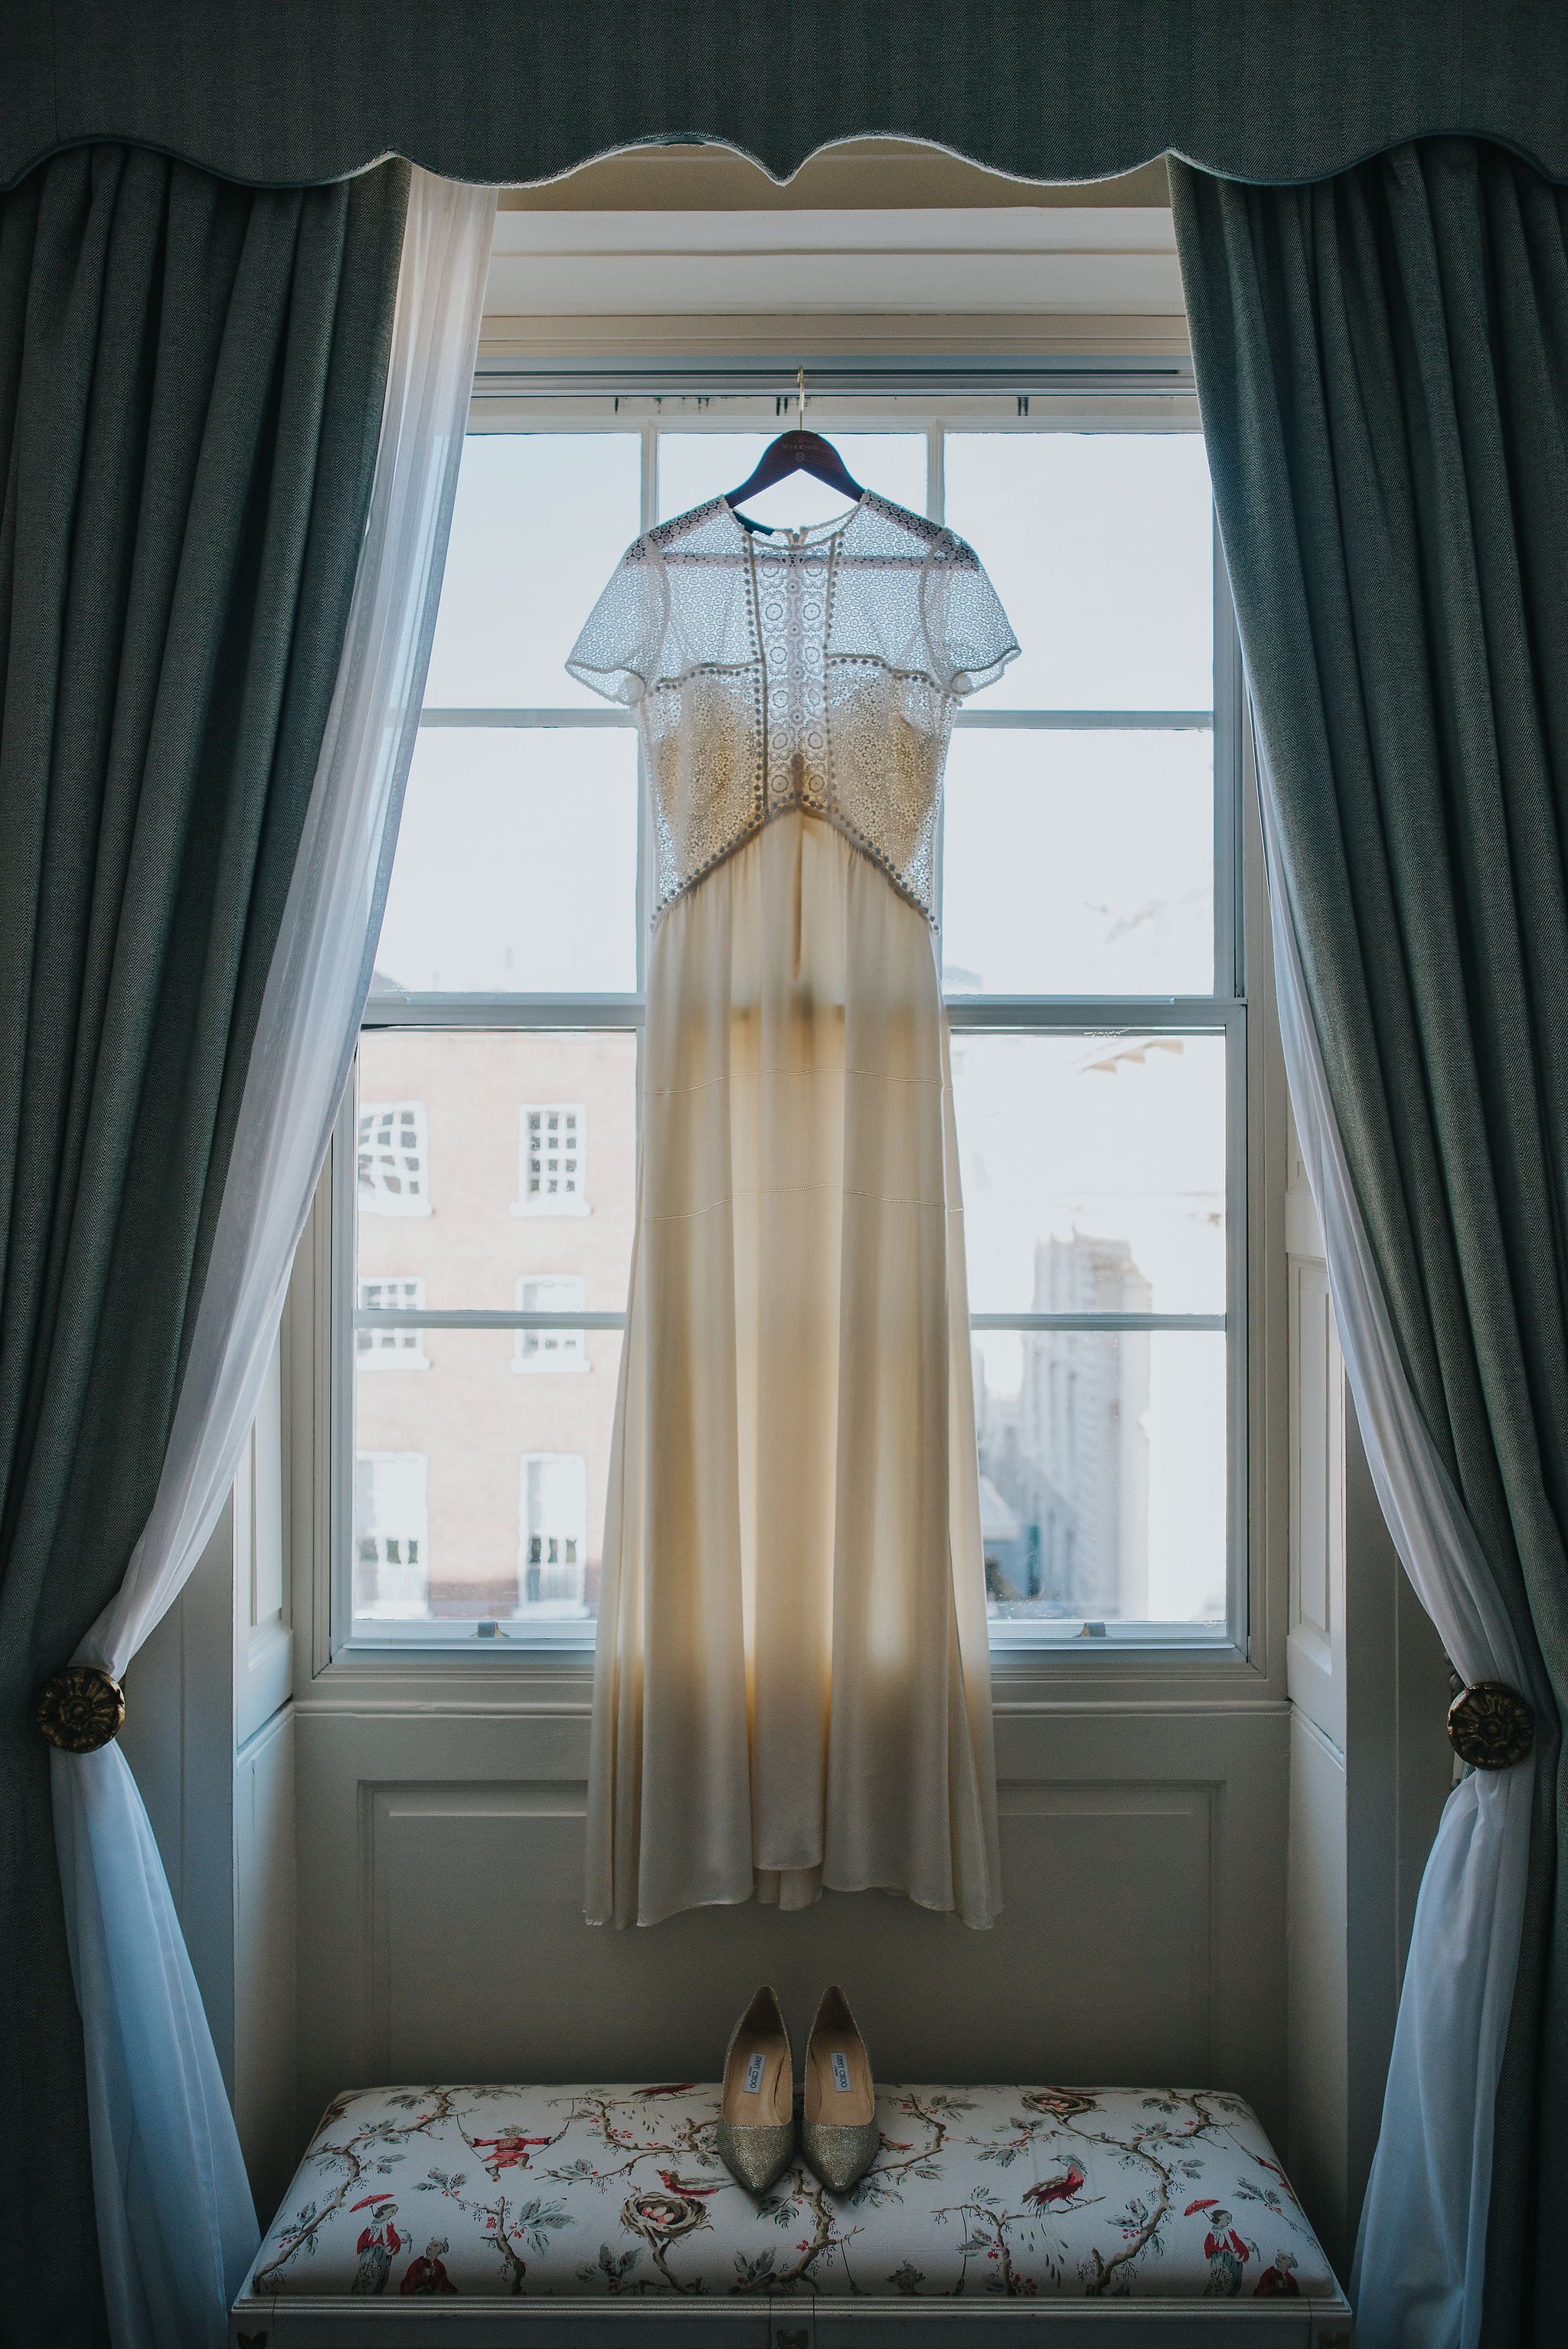 Burberry wedding dress hanging up in window of Merrion Hotel Dublin